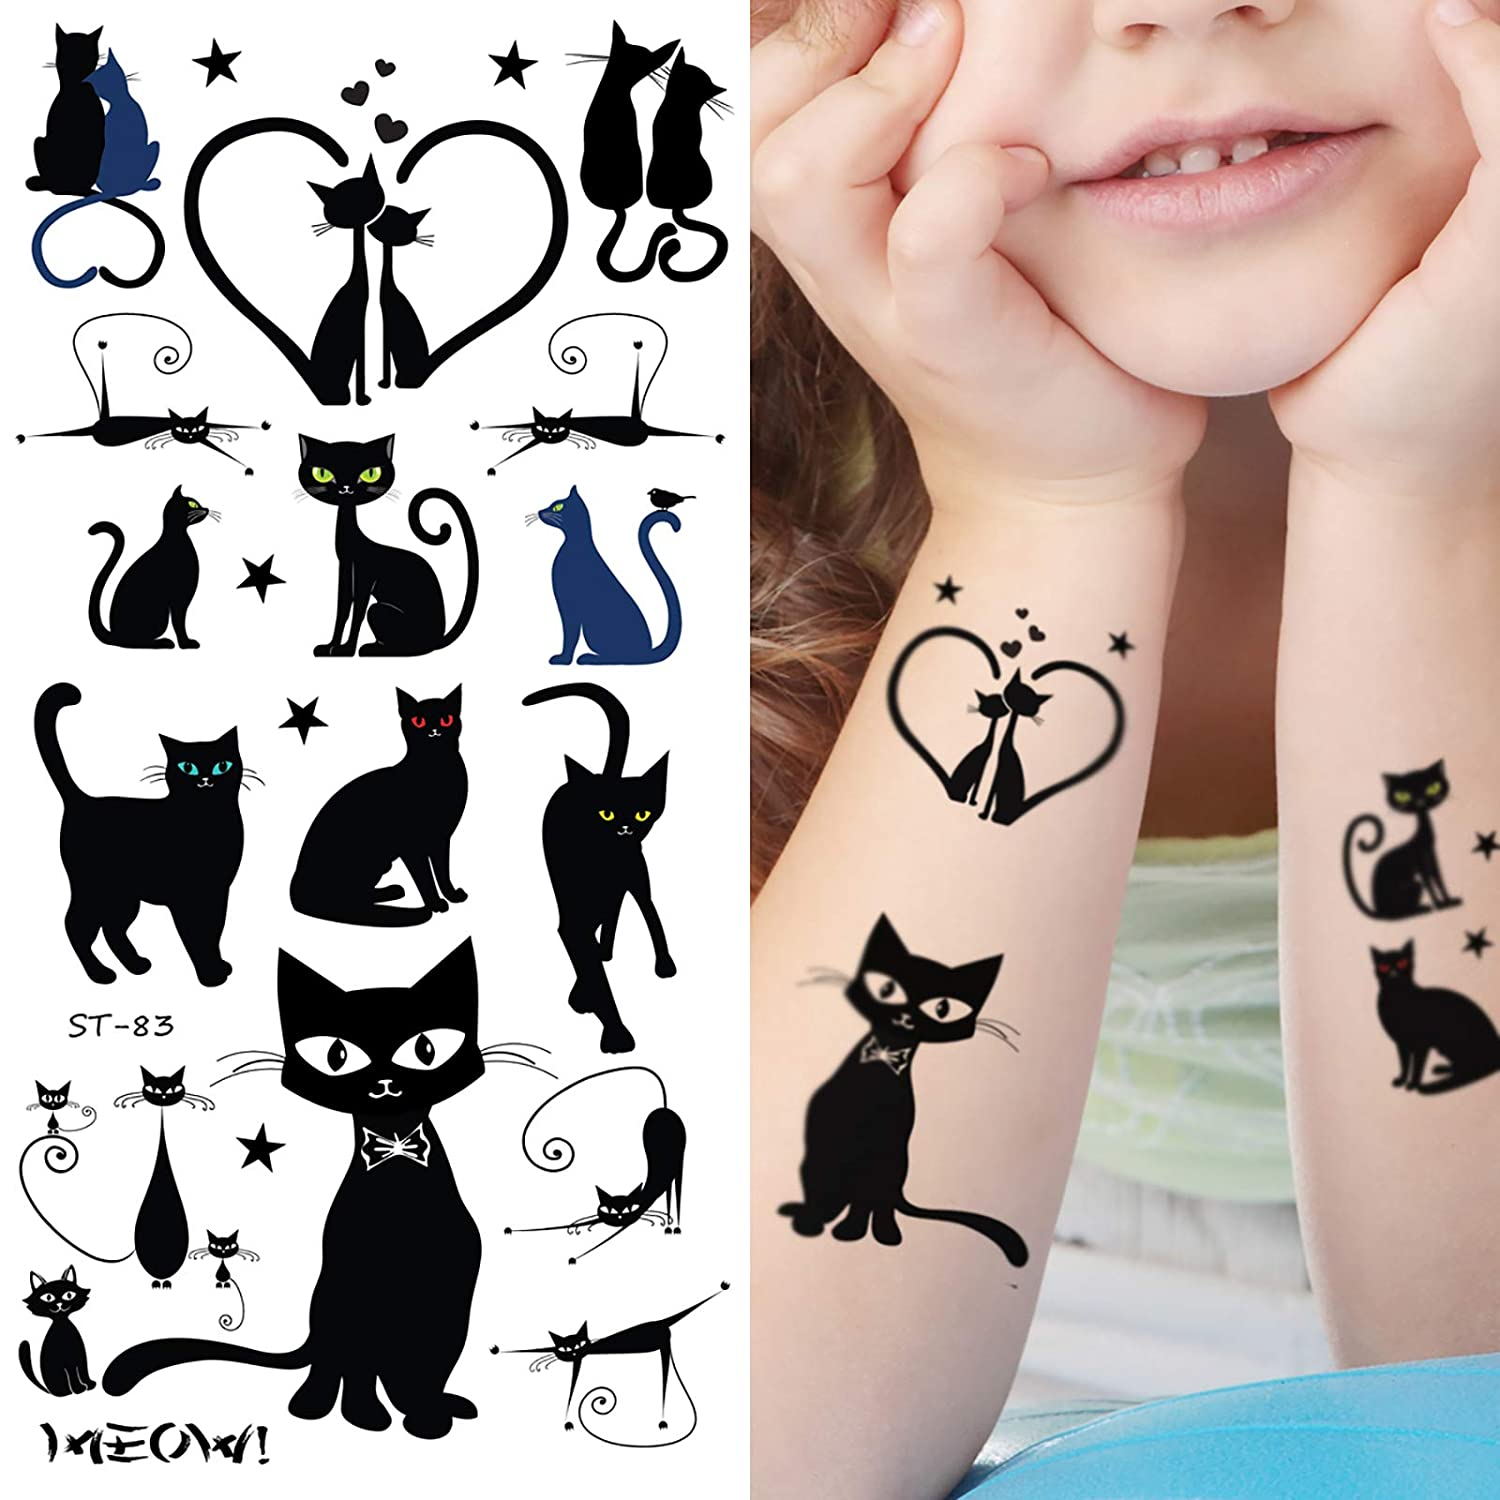 Supperb Temporary Tattoos - Cats (Black Cats)